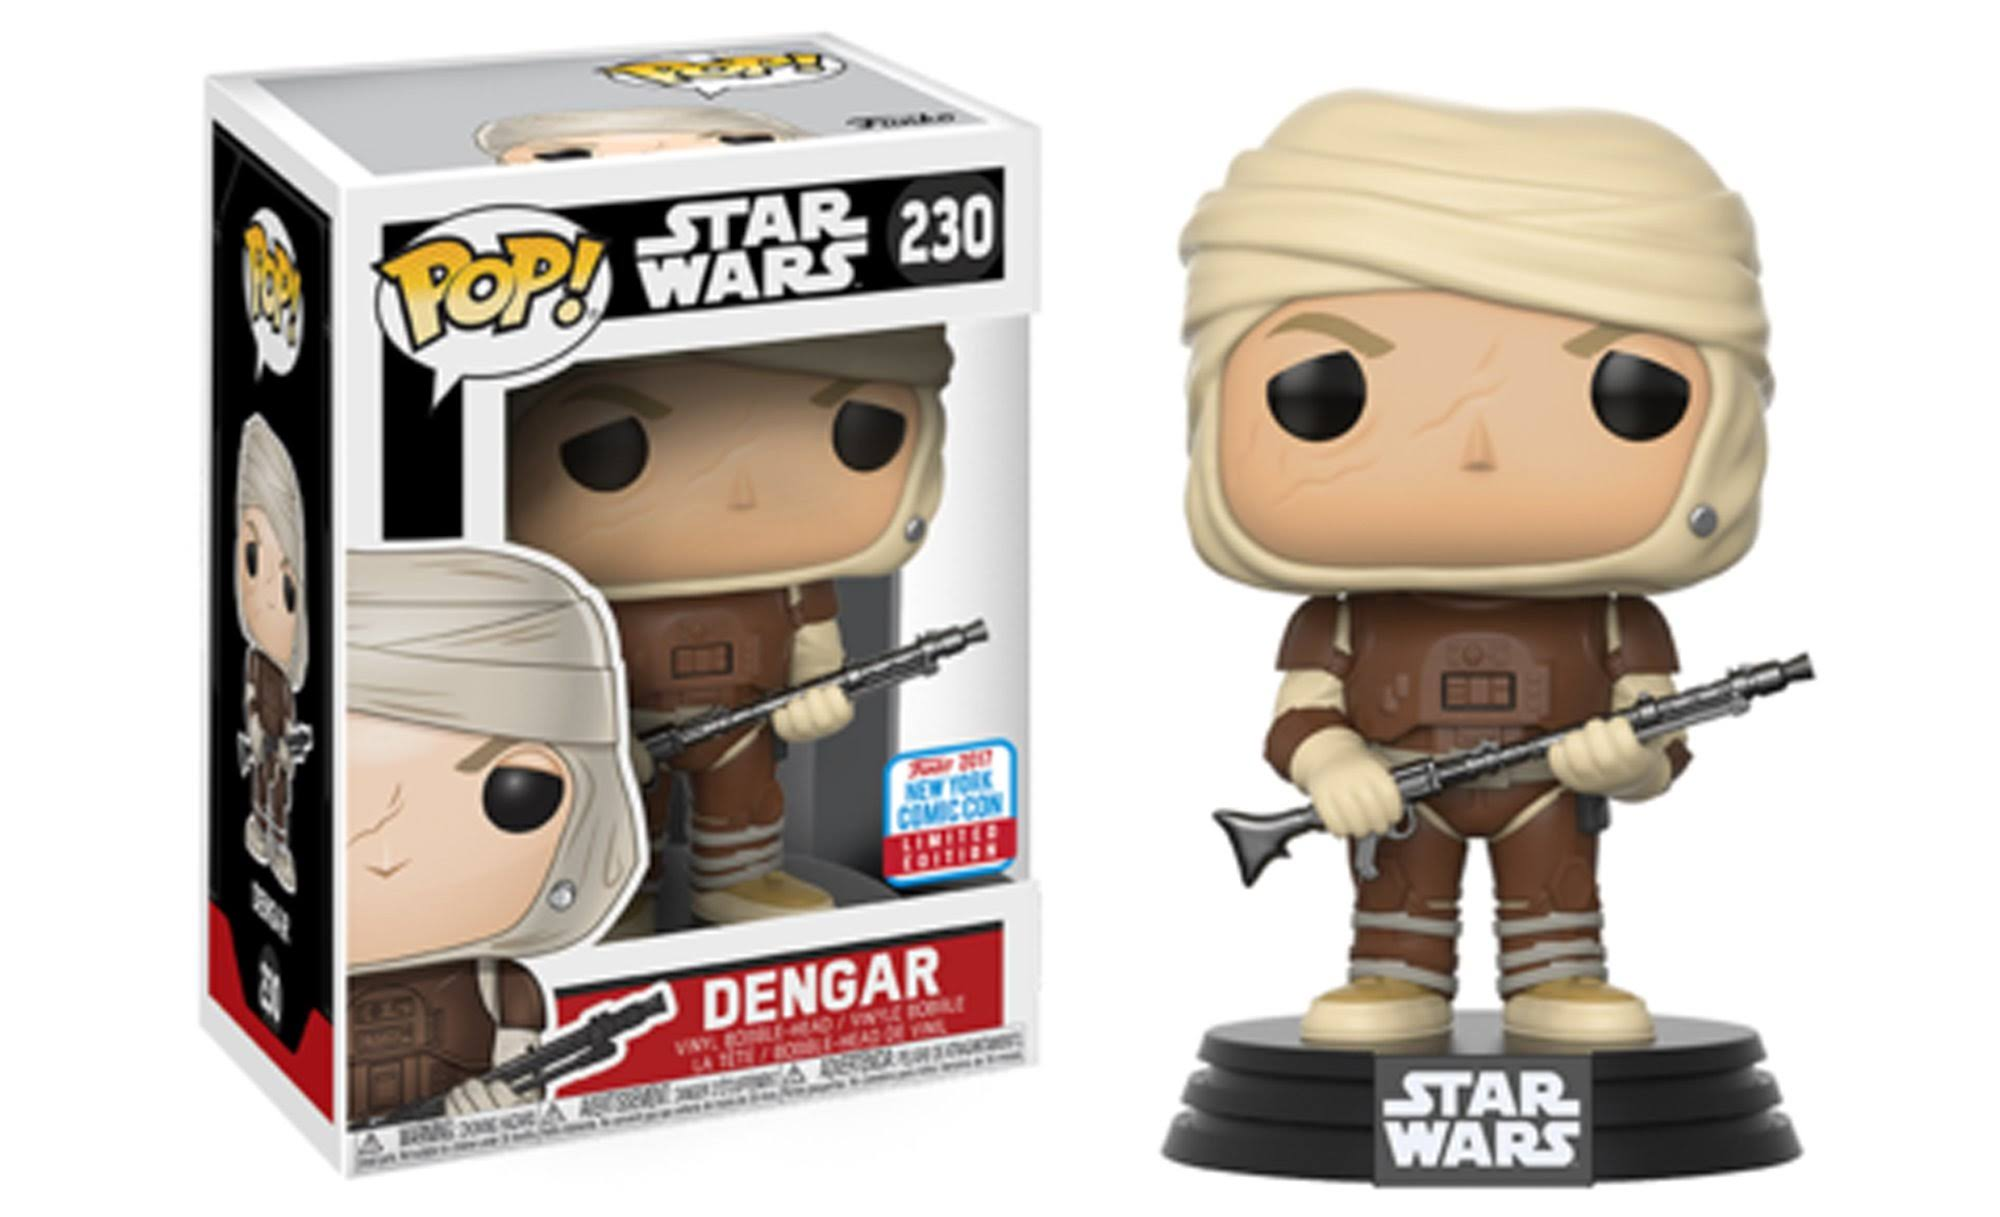 Pop! Star Wars: Dengar NYCC